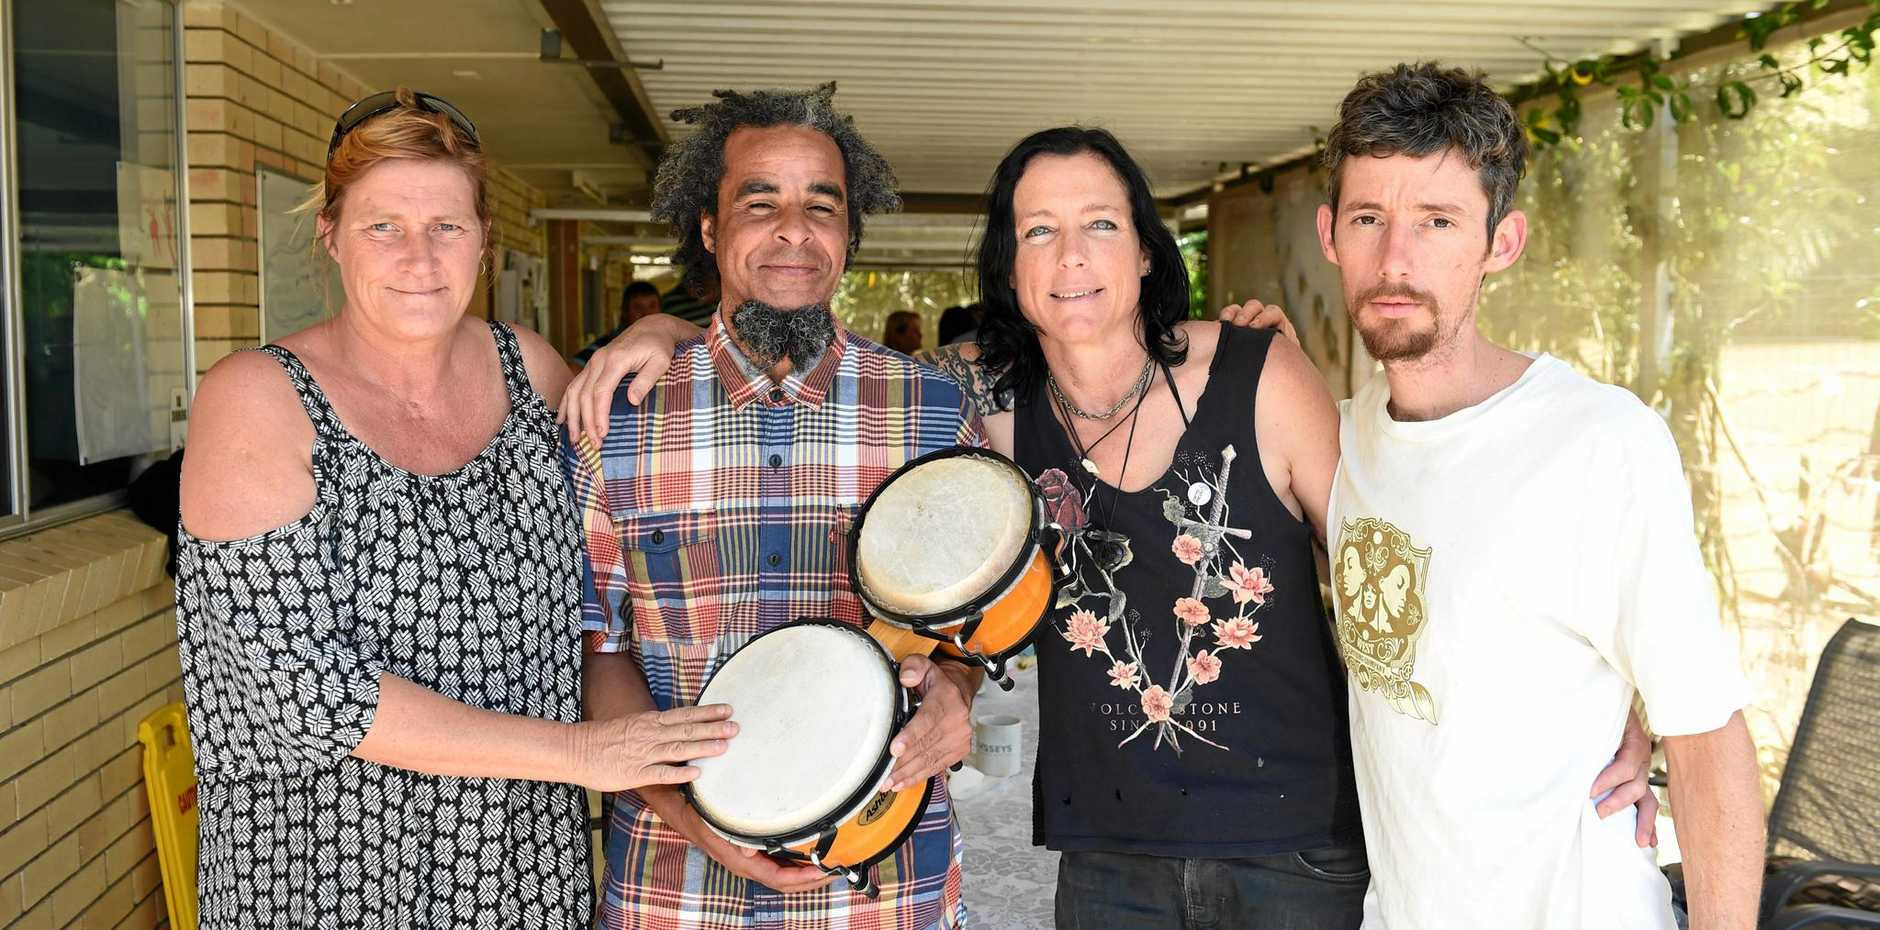 Terrill Tomlinson, Jason Etheridge, Tish McGeary and Josh Scrivenler attend a Mental Health Awareness event held in Tweed.